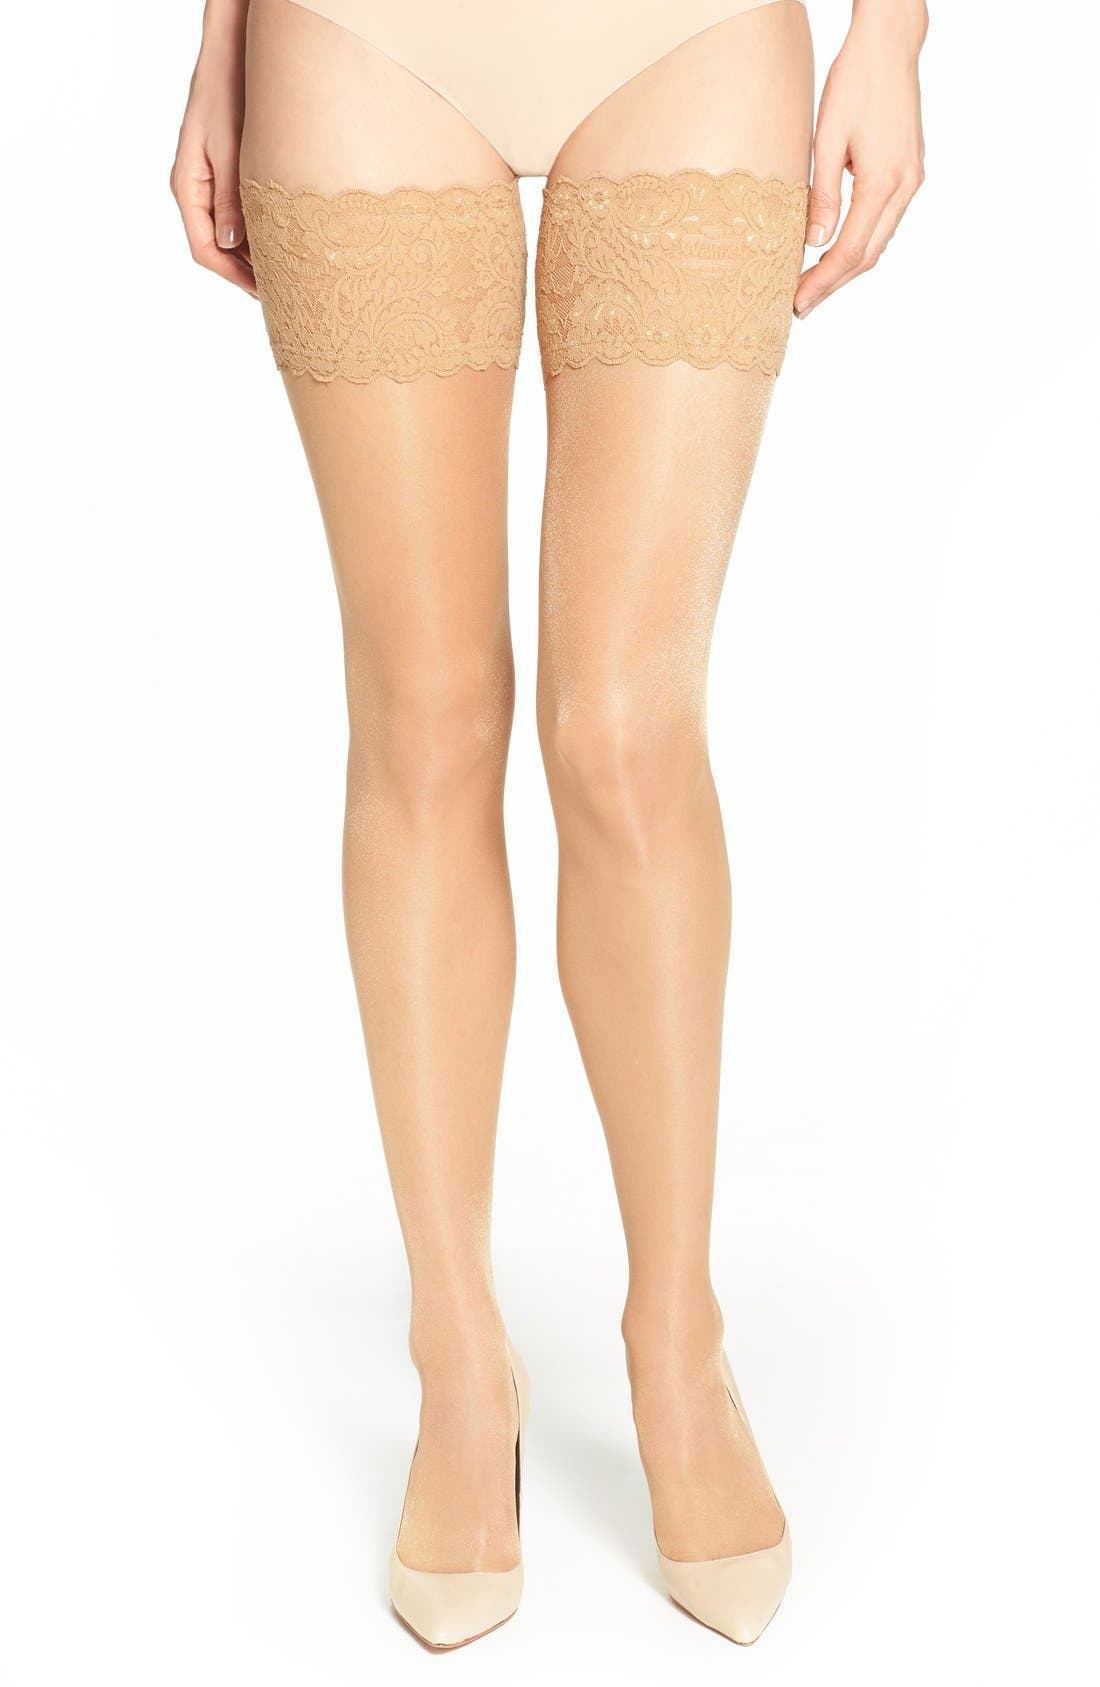 Main Image - Wolford Satin Touch 20 Stay-Up Stockings